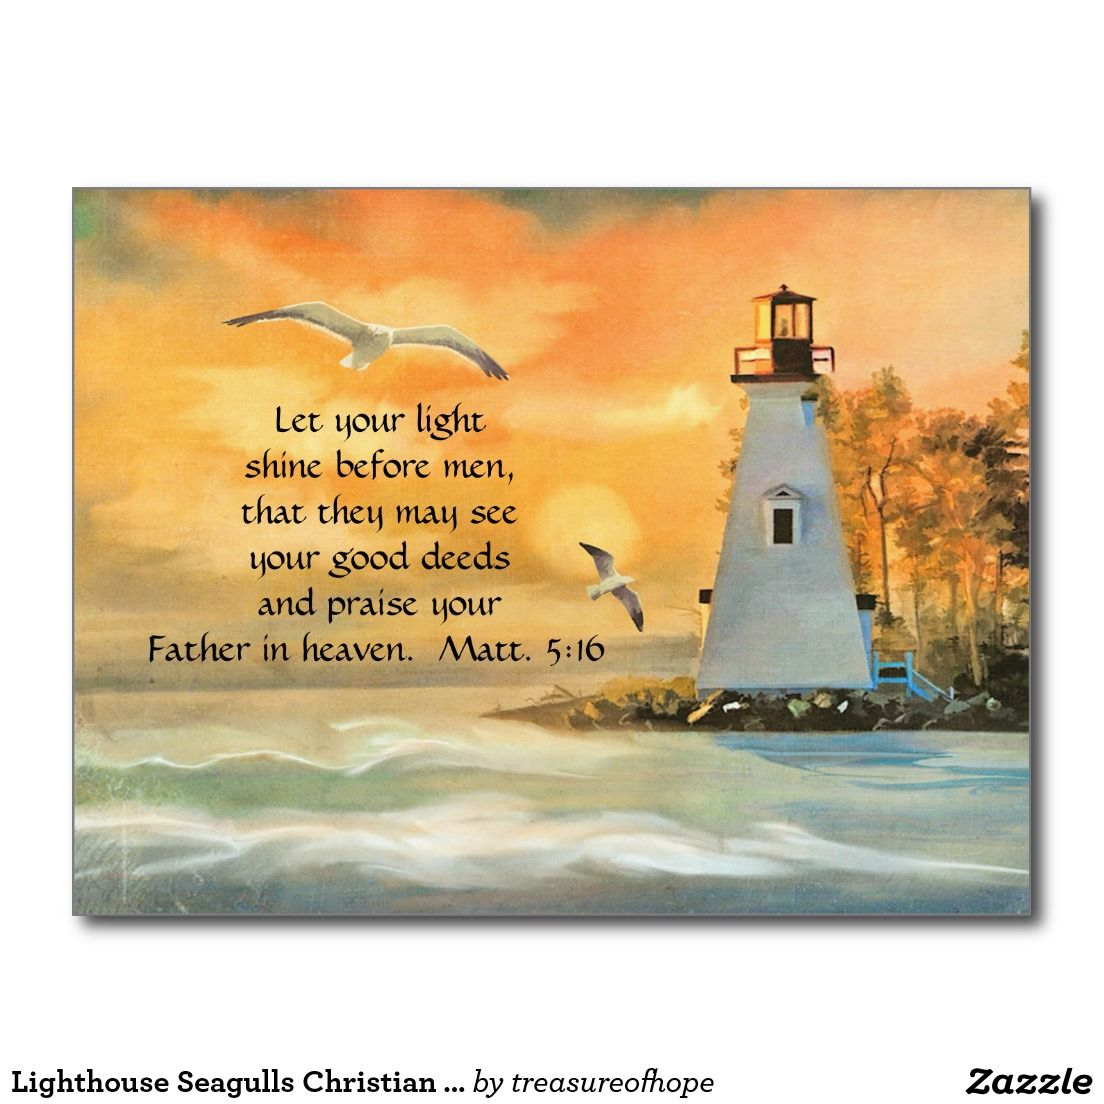 Lighthouse seagulls christian bible verse postcard explore greeting cards banner and more kristyandbryce Choice Image